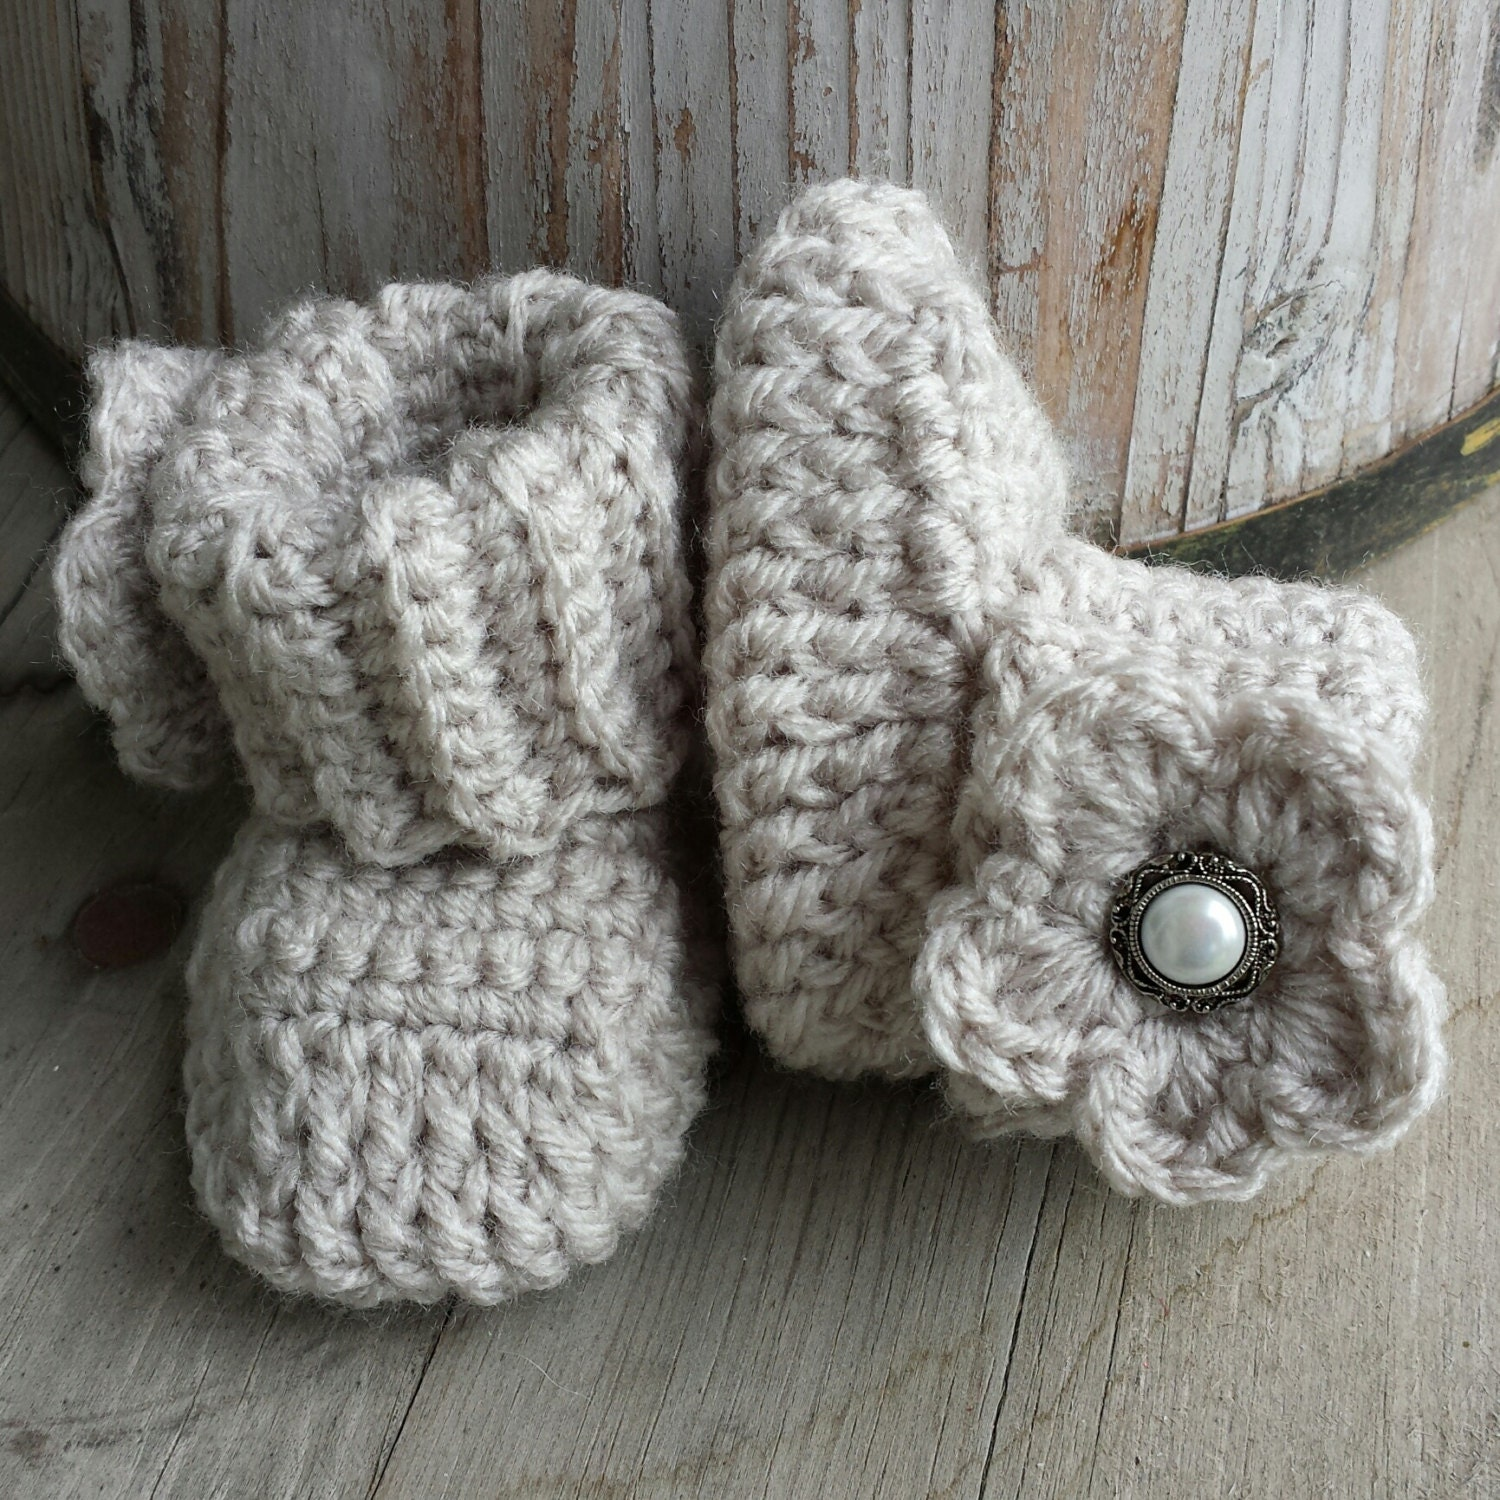 Crochet Baby Girl Boots Pattern : Crochet baby girl boots in oatmeal with matching flower and